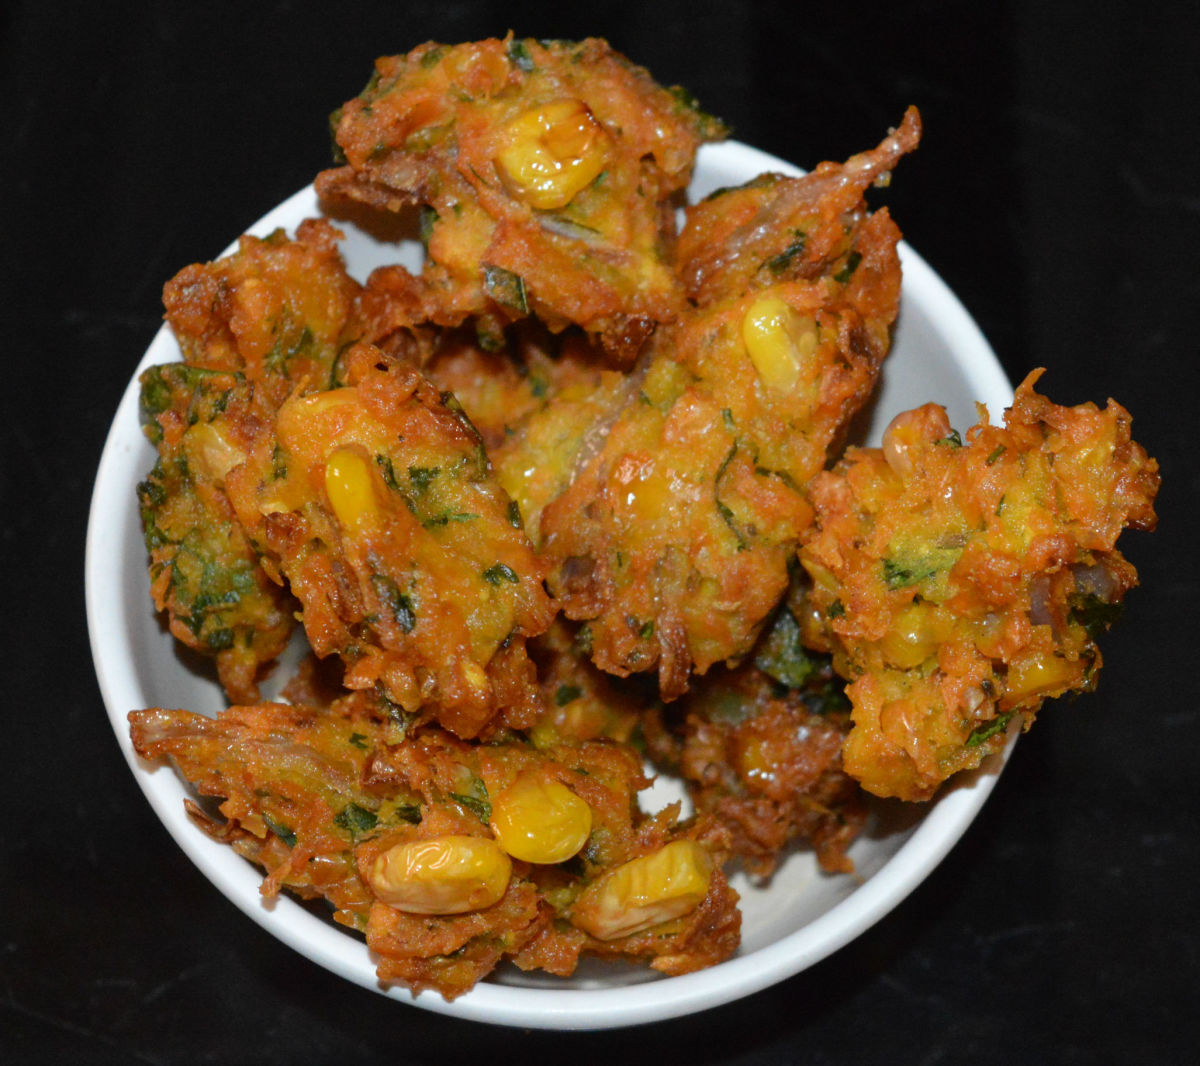 Corn fritters (corn pakora), ready to eat.